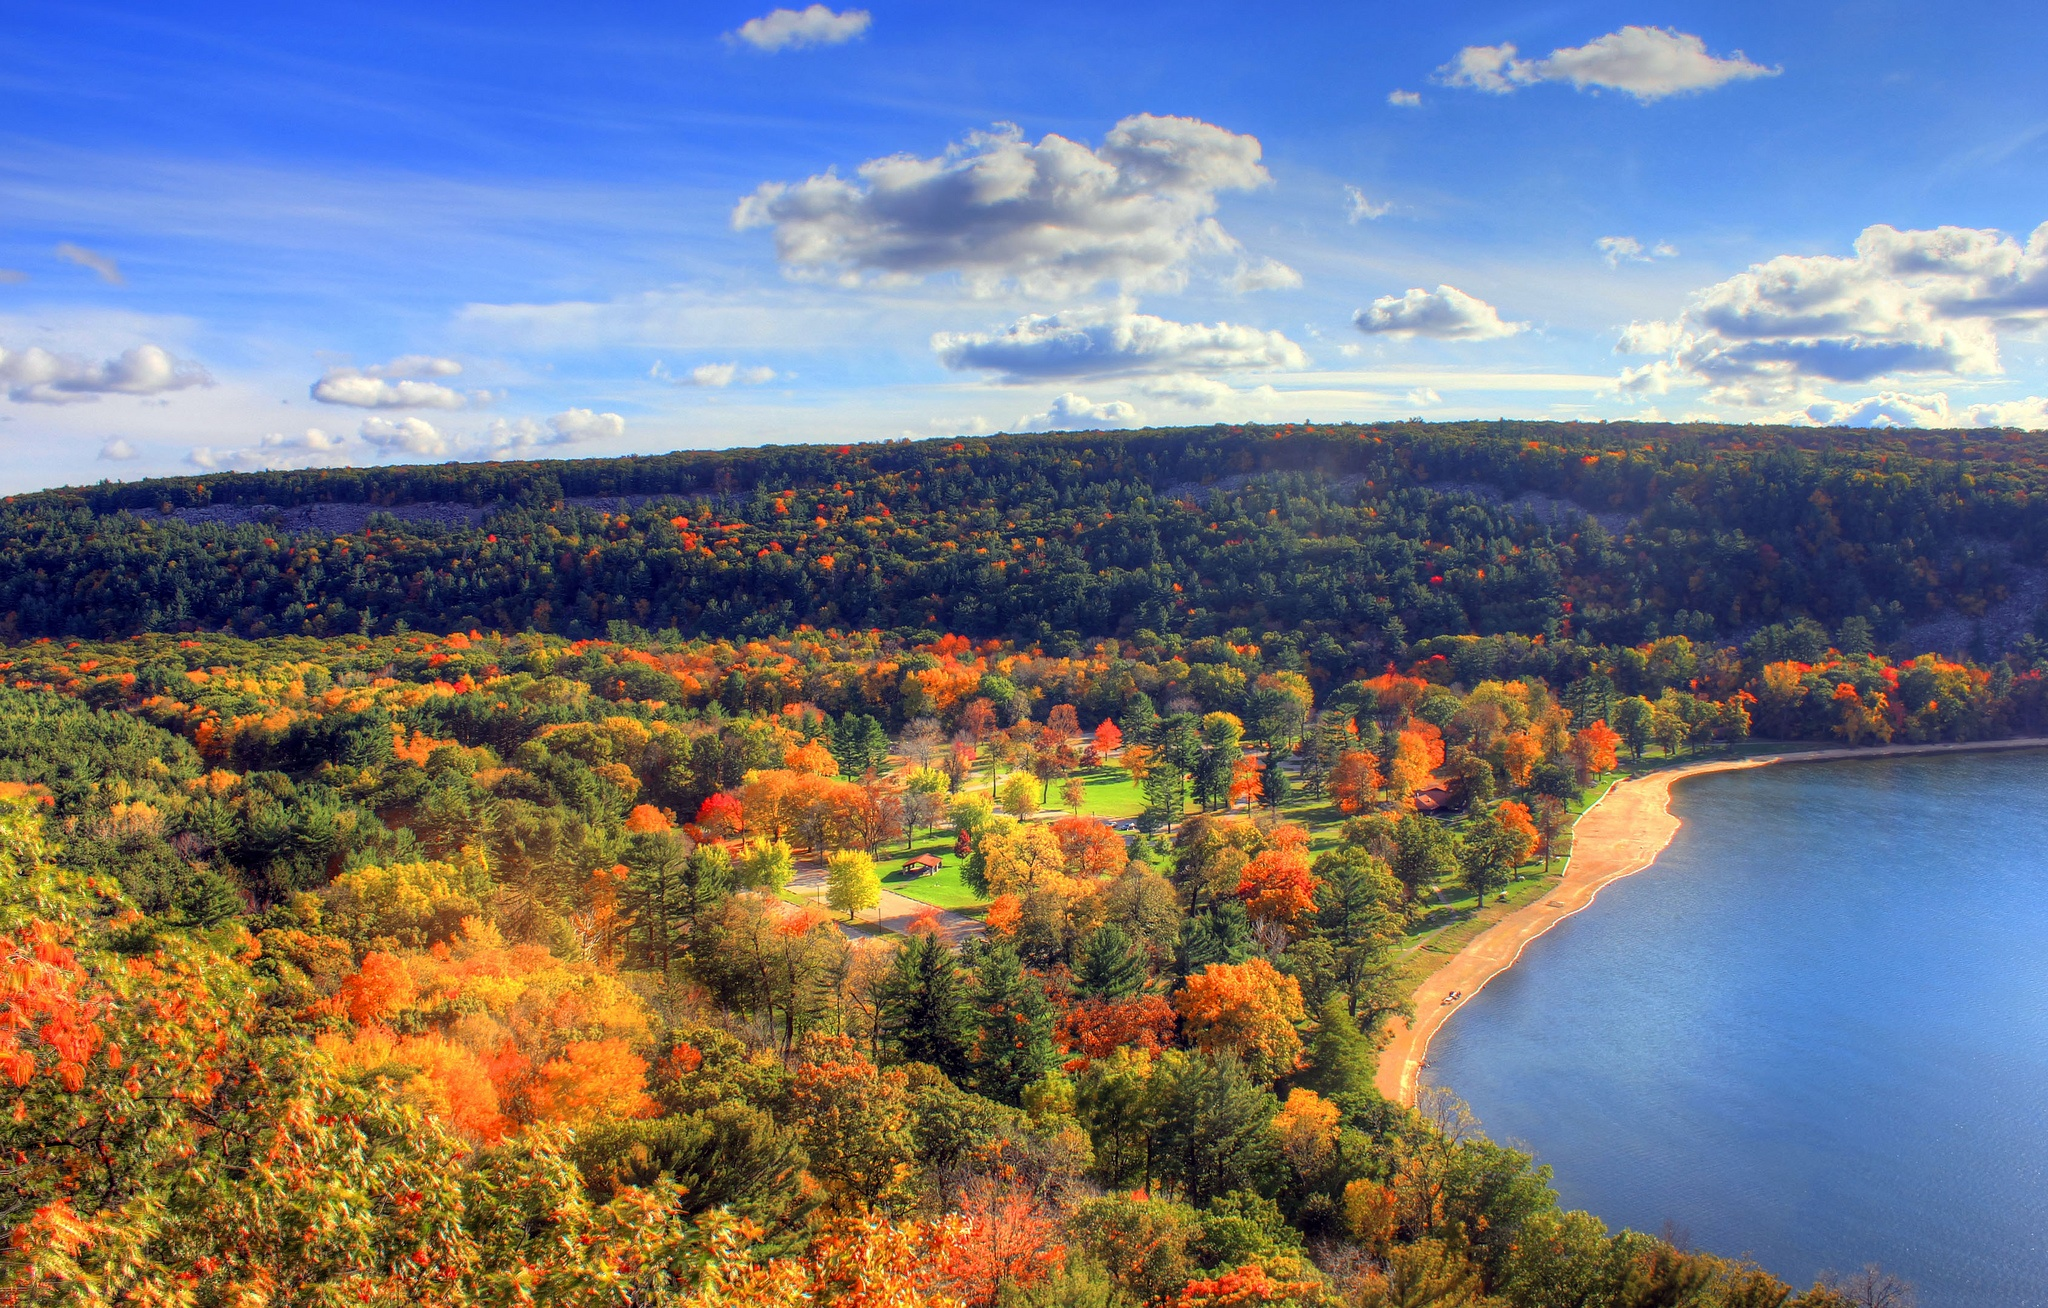 Maine Fall Foliage Wallpaper You Must Visit These 8 Awesome Places In Wisconsin This Fall